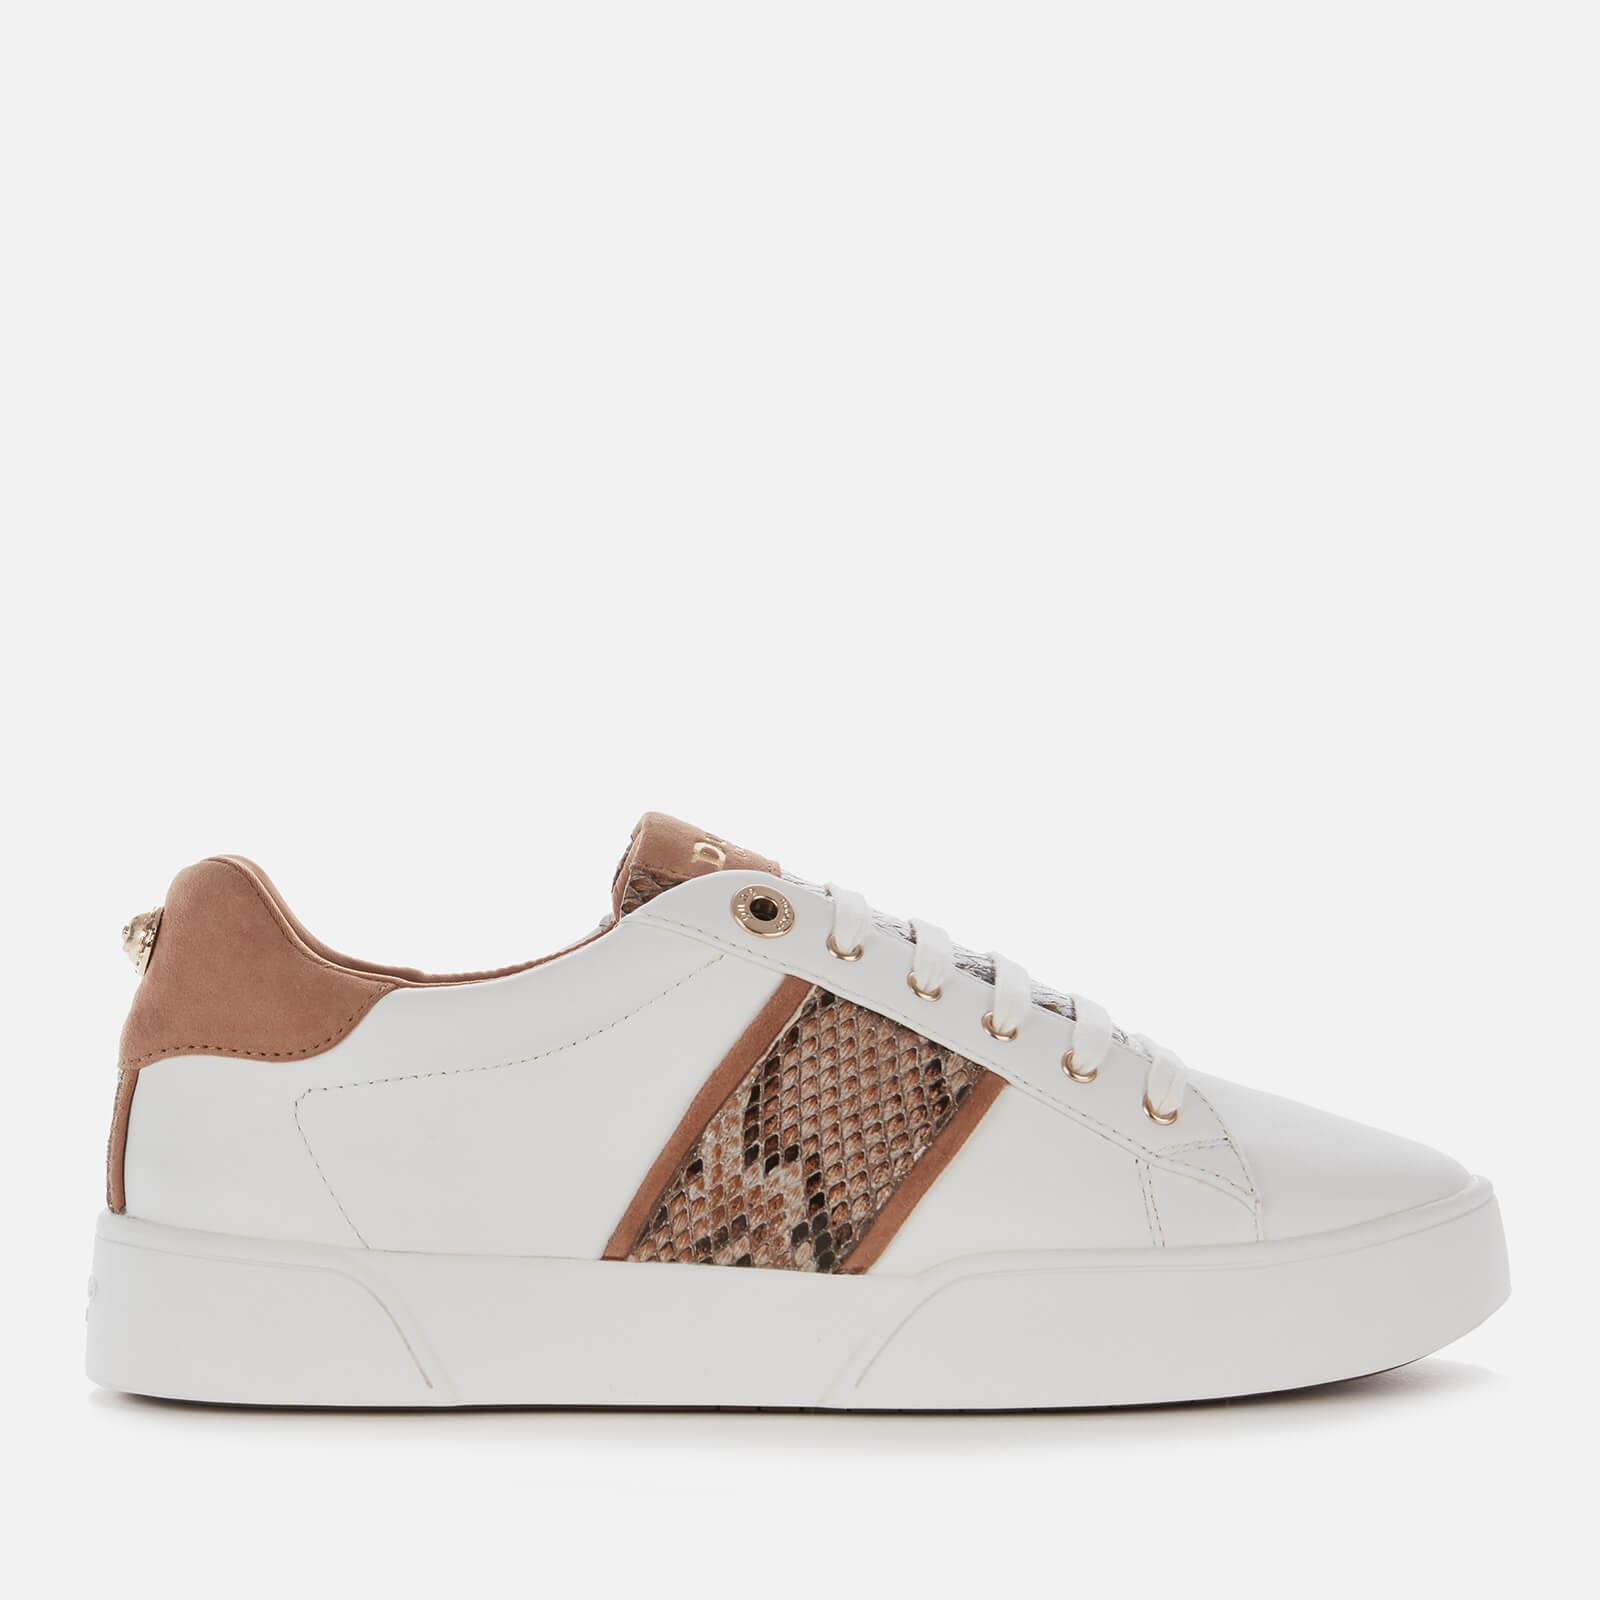 Dune Women's Elsie S Leather Low Top Trainers - White Reptile Print - UK 8